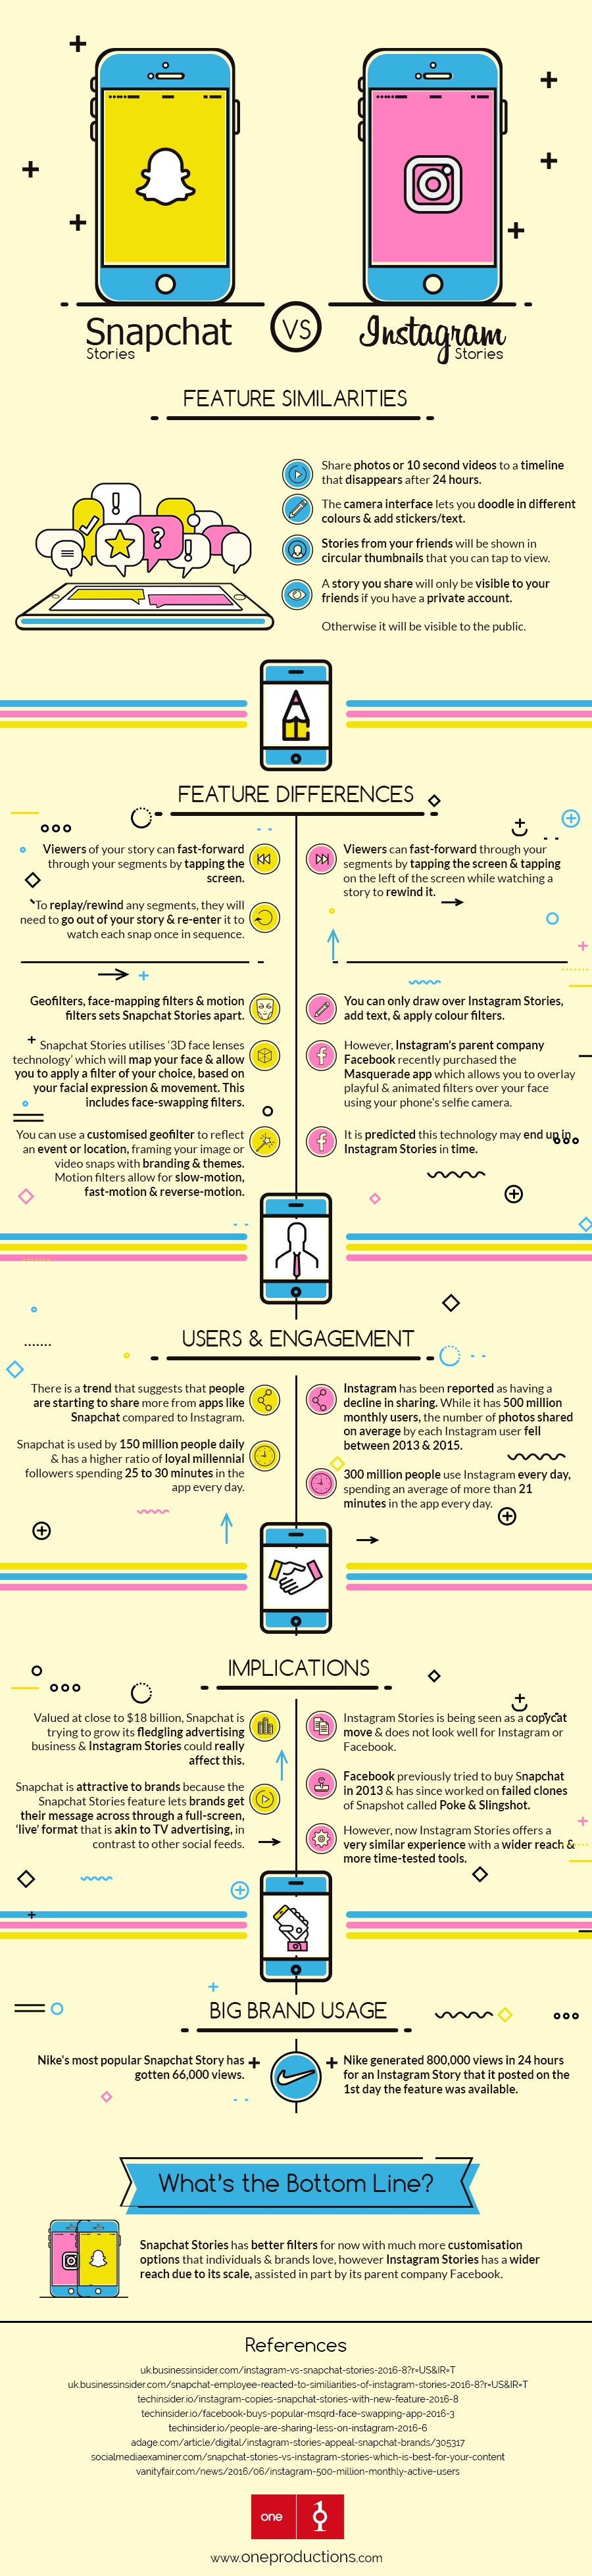 snapchat-stories-vs-instagram-stories-infographic